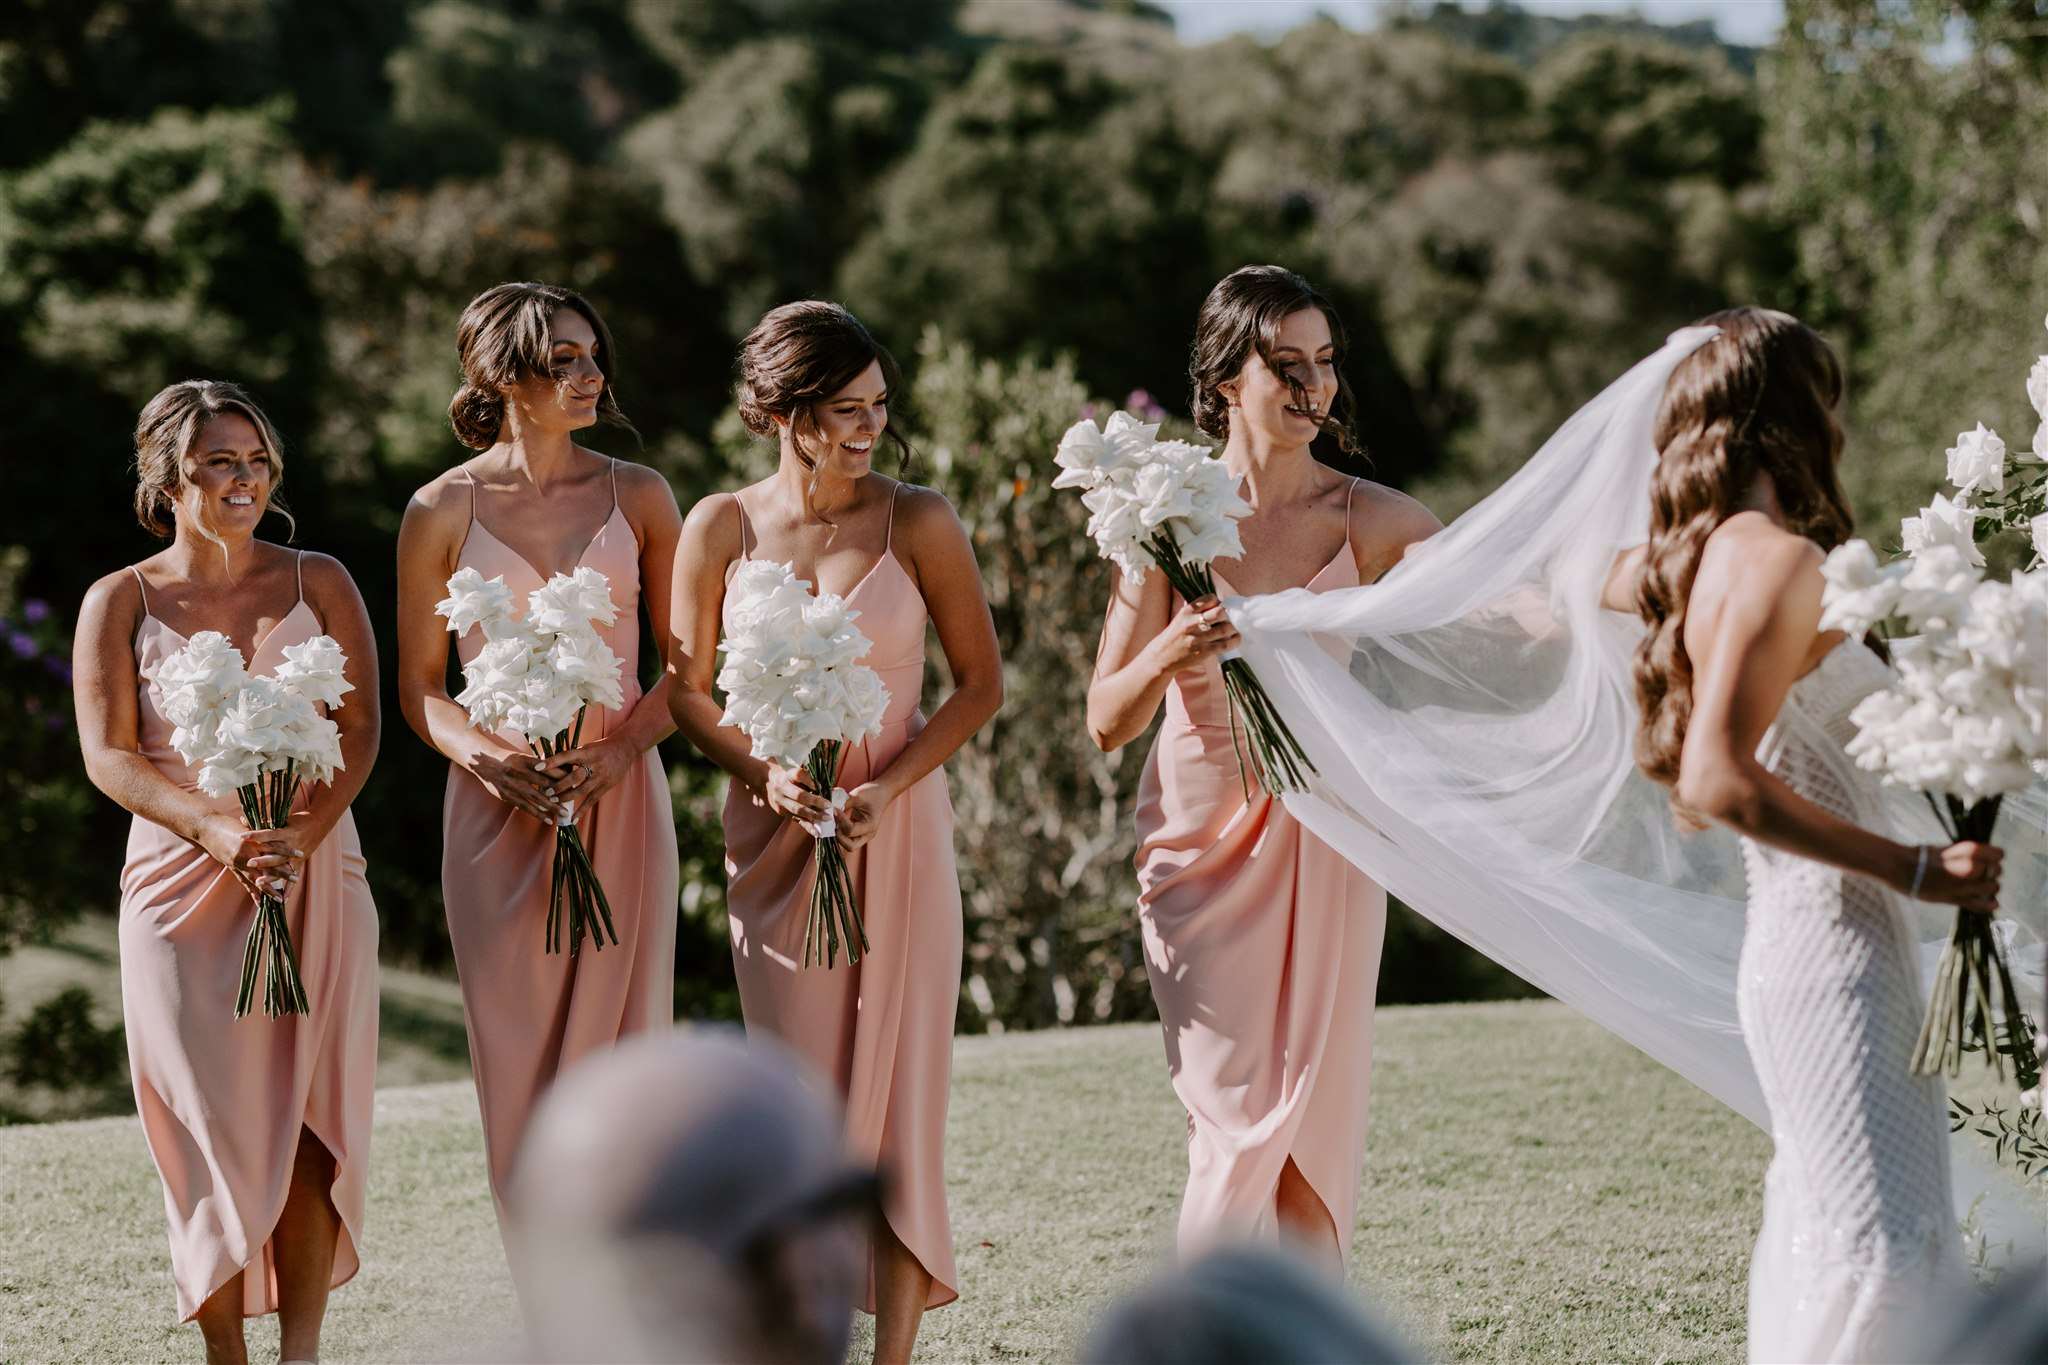 Modern Bridesmaids bouquets of white roses